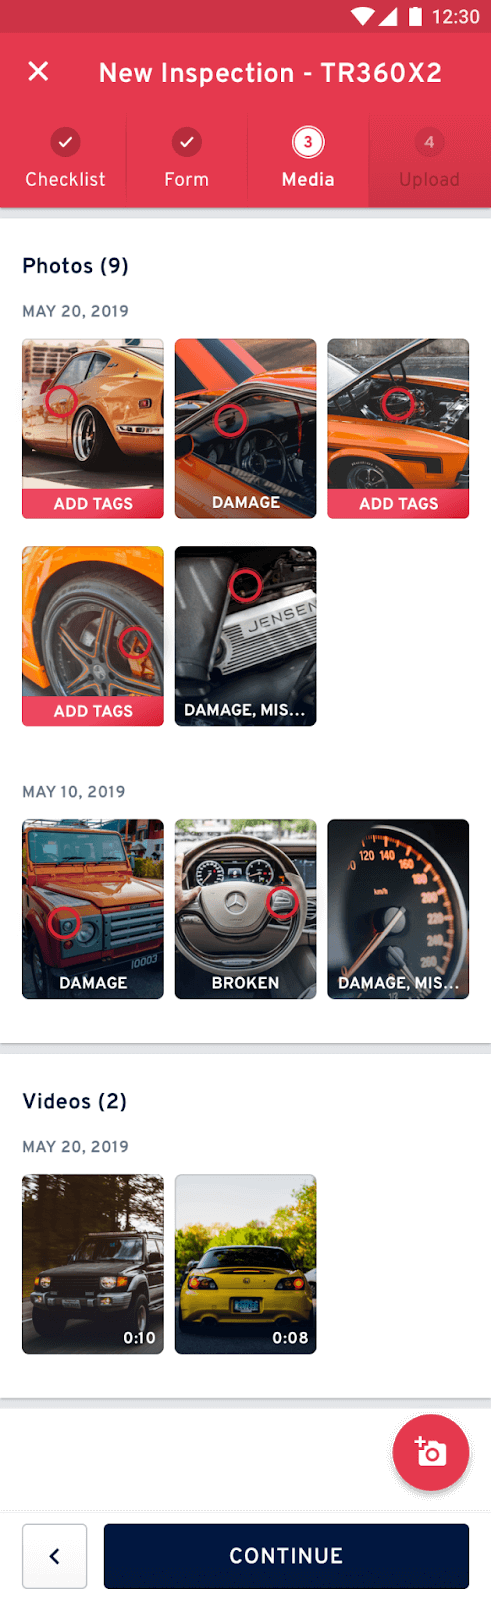 Photos of vehicles on a smartphone screen